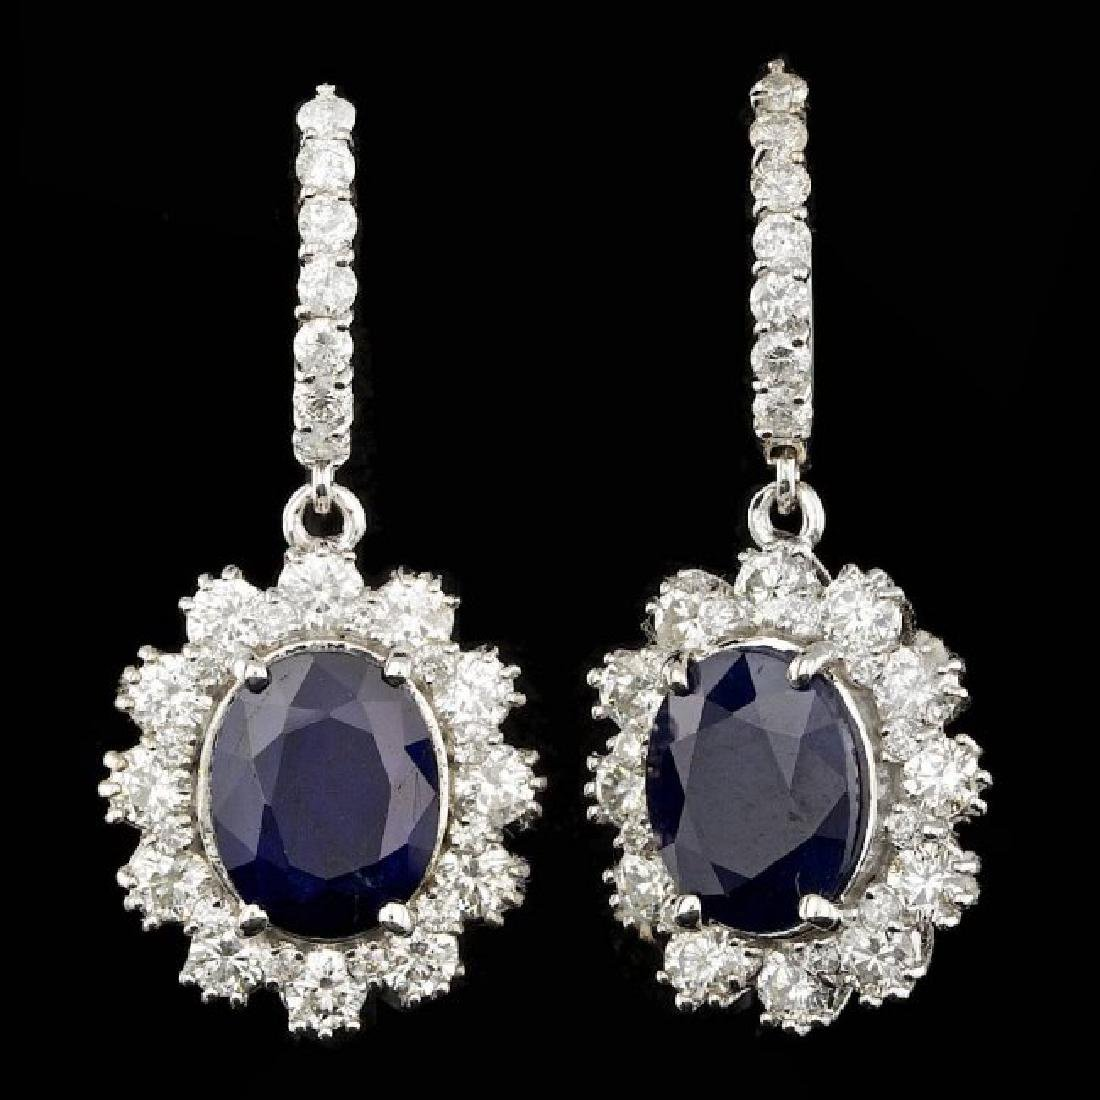 14k Gold 7.00ct Sapphire 2.80ct Diamond Earrings